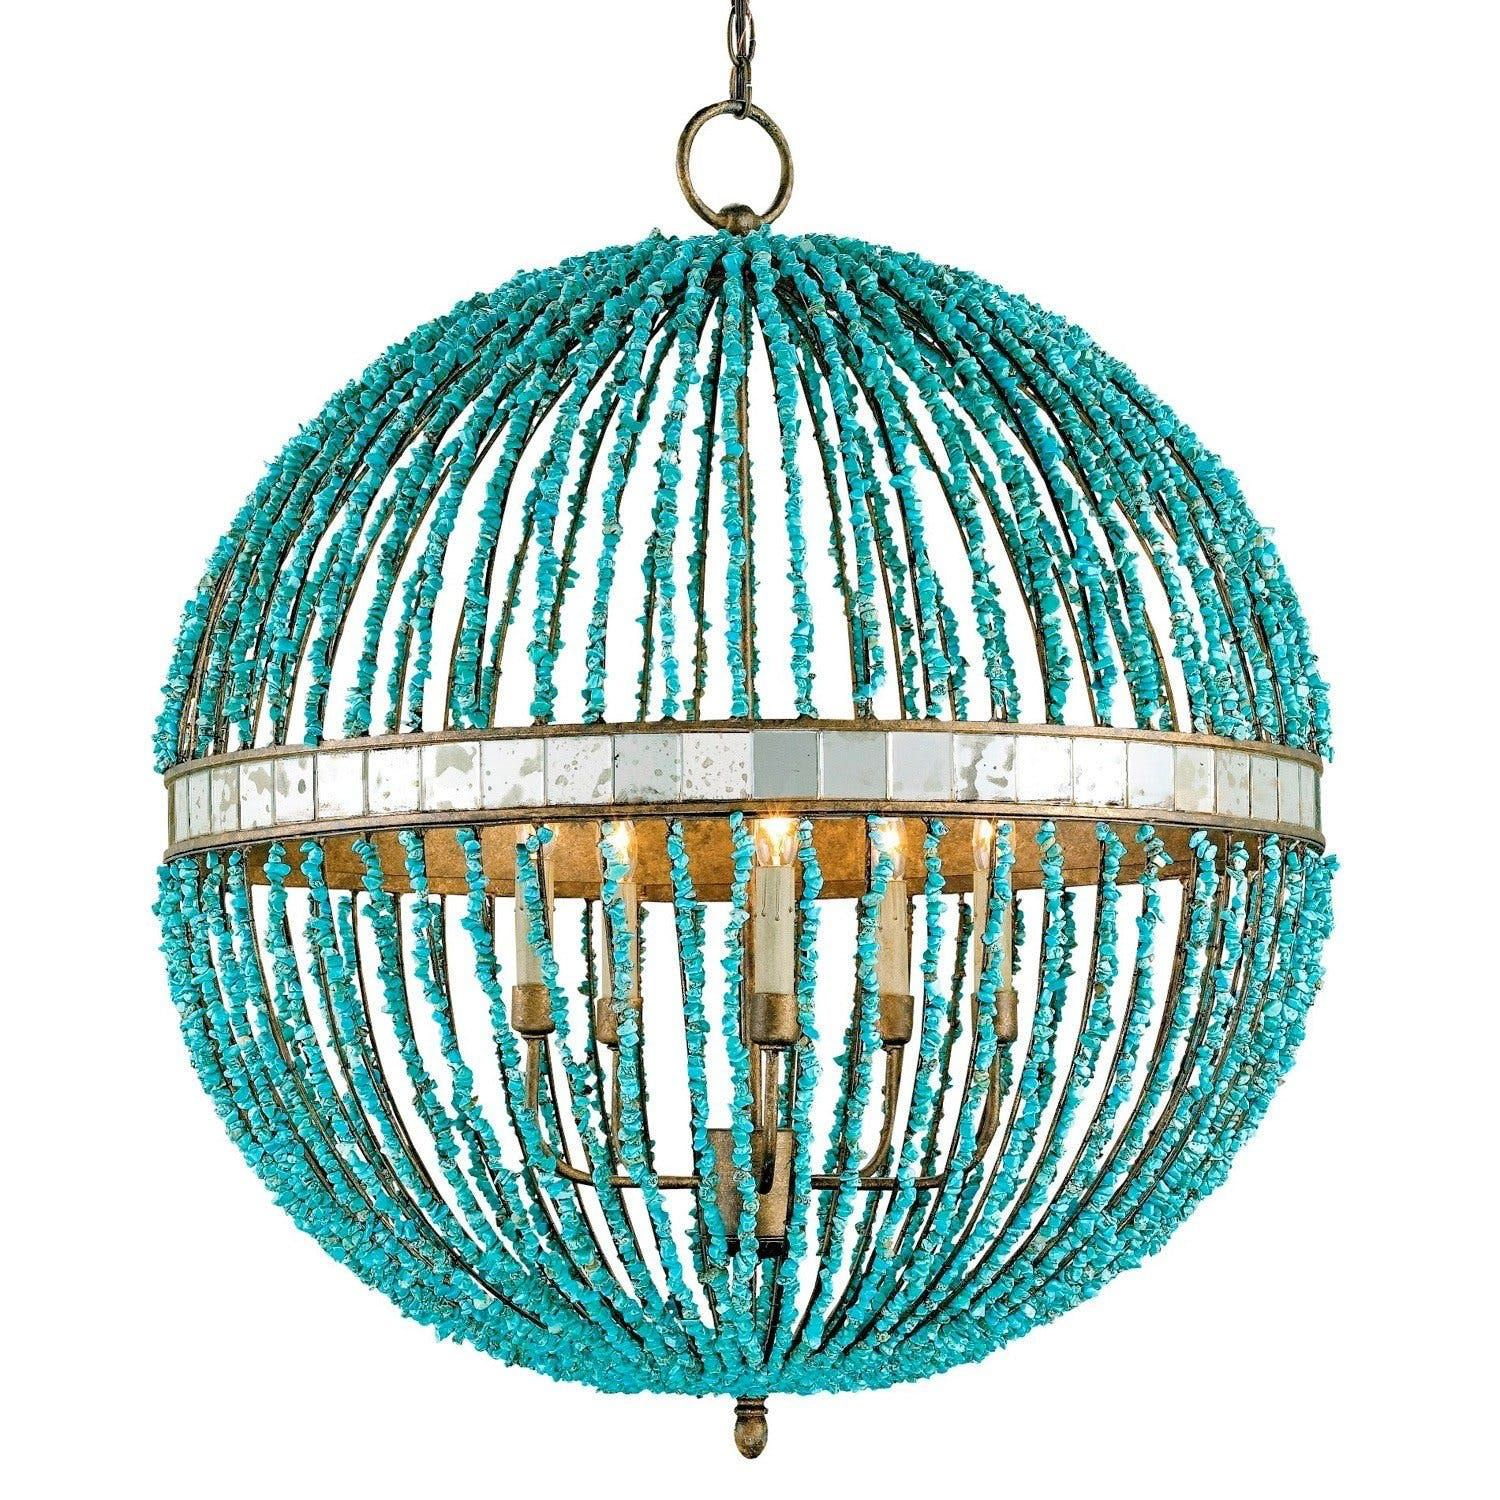 Turquoise Beaded Chandeliers High & DIY